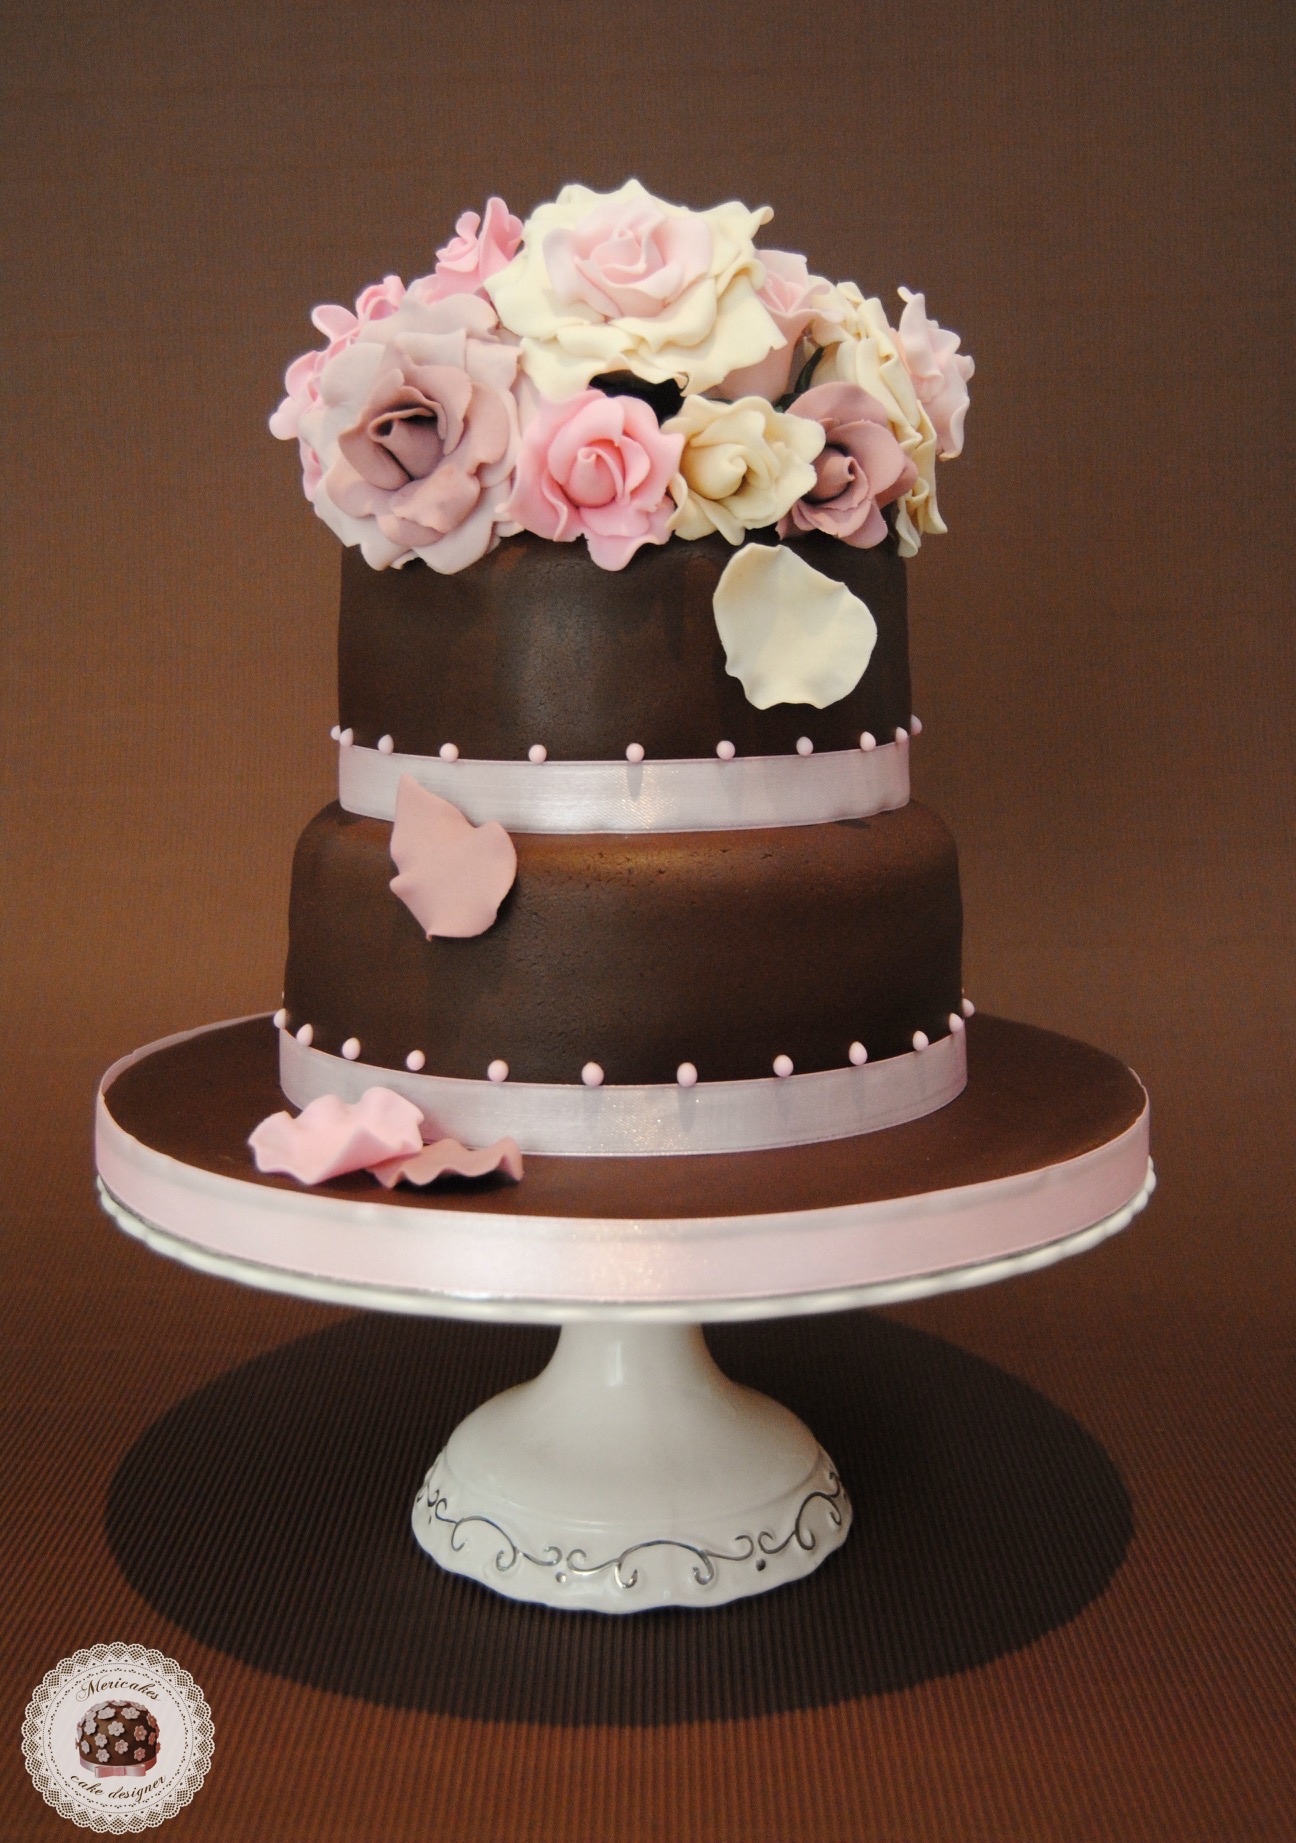 tarta-boda-wedding-cake-mericakes-barcelona-novios-fondant-rosas-chocolate-red-velvet-bouquet